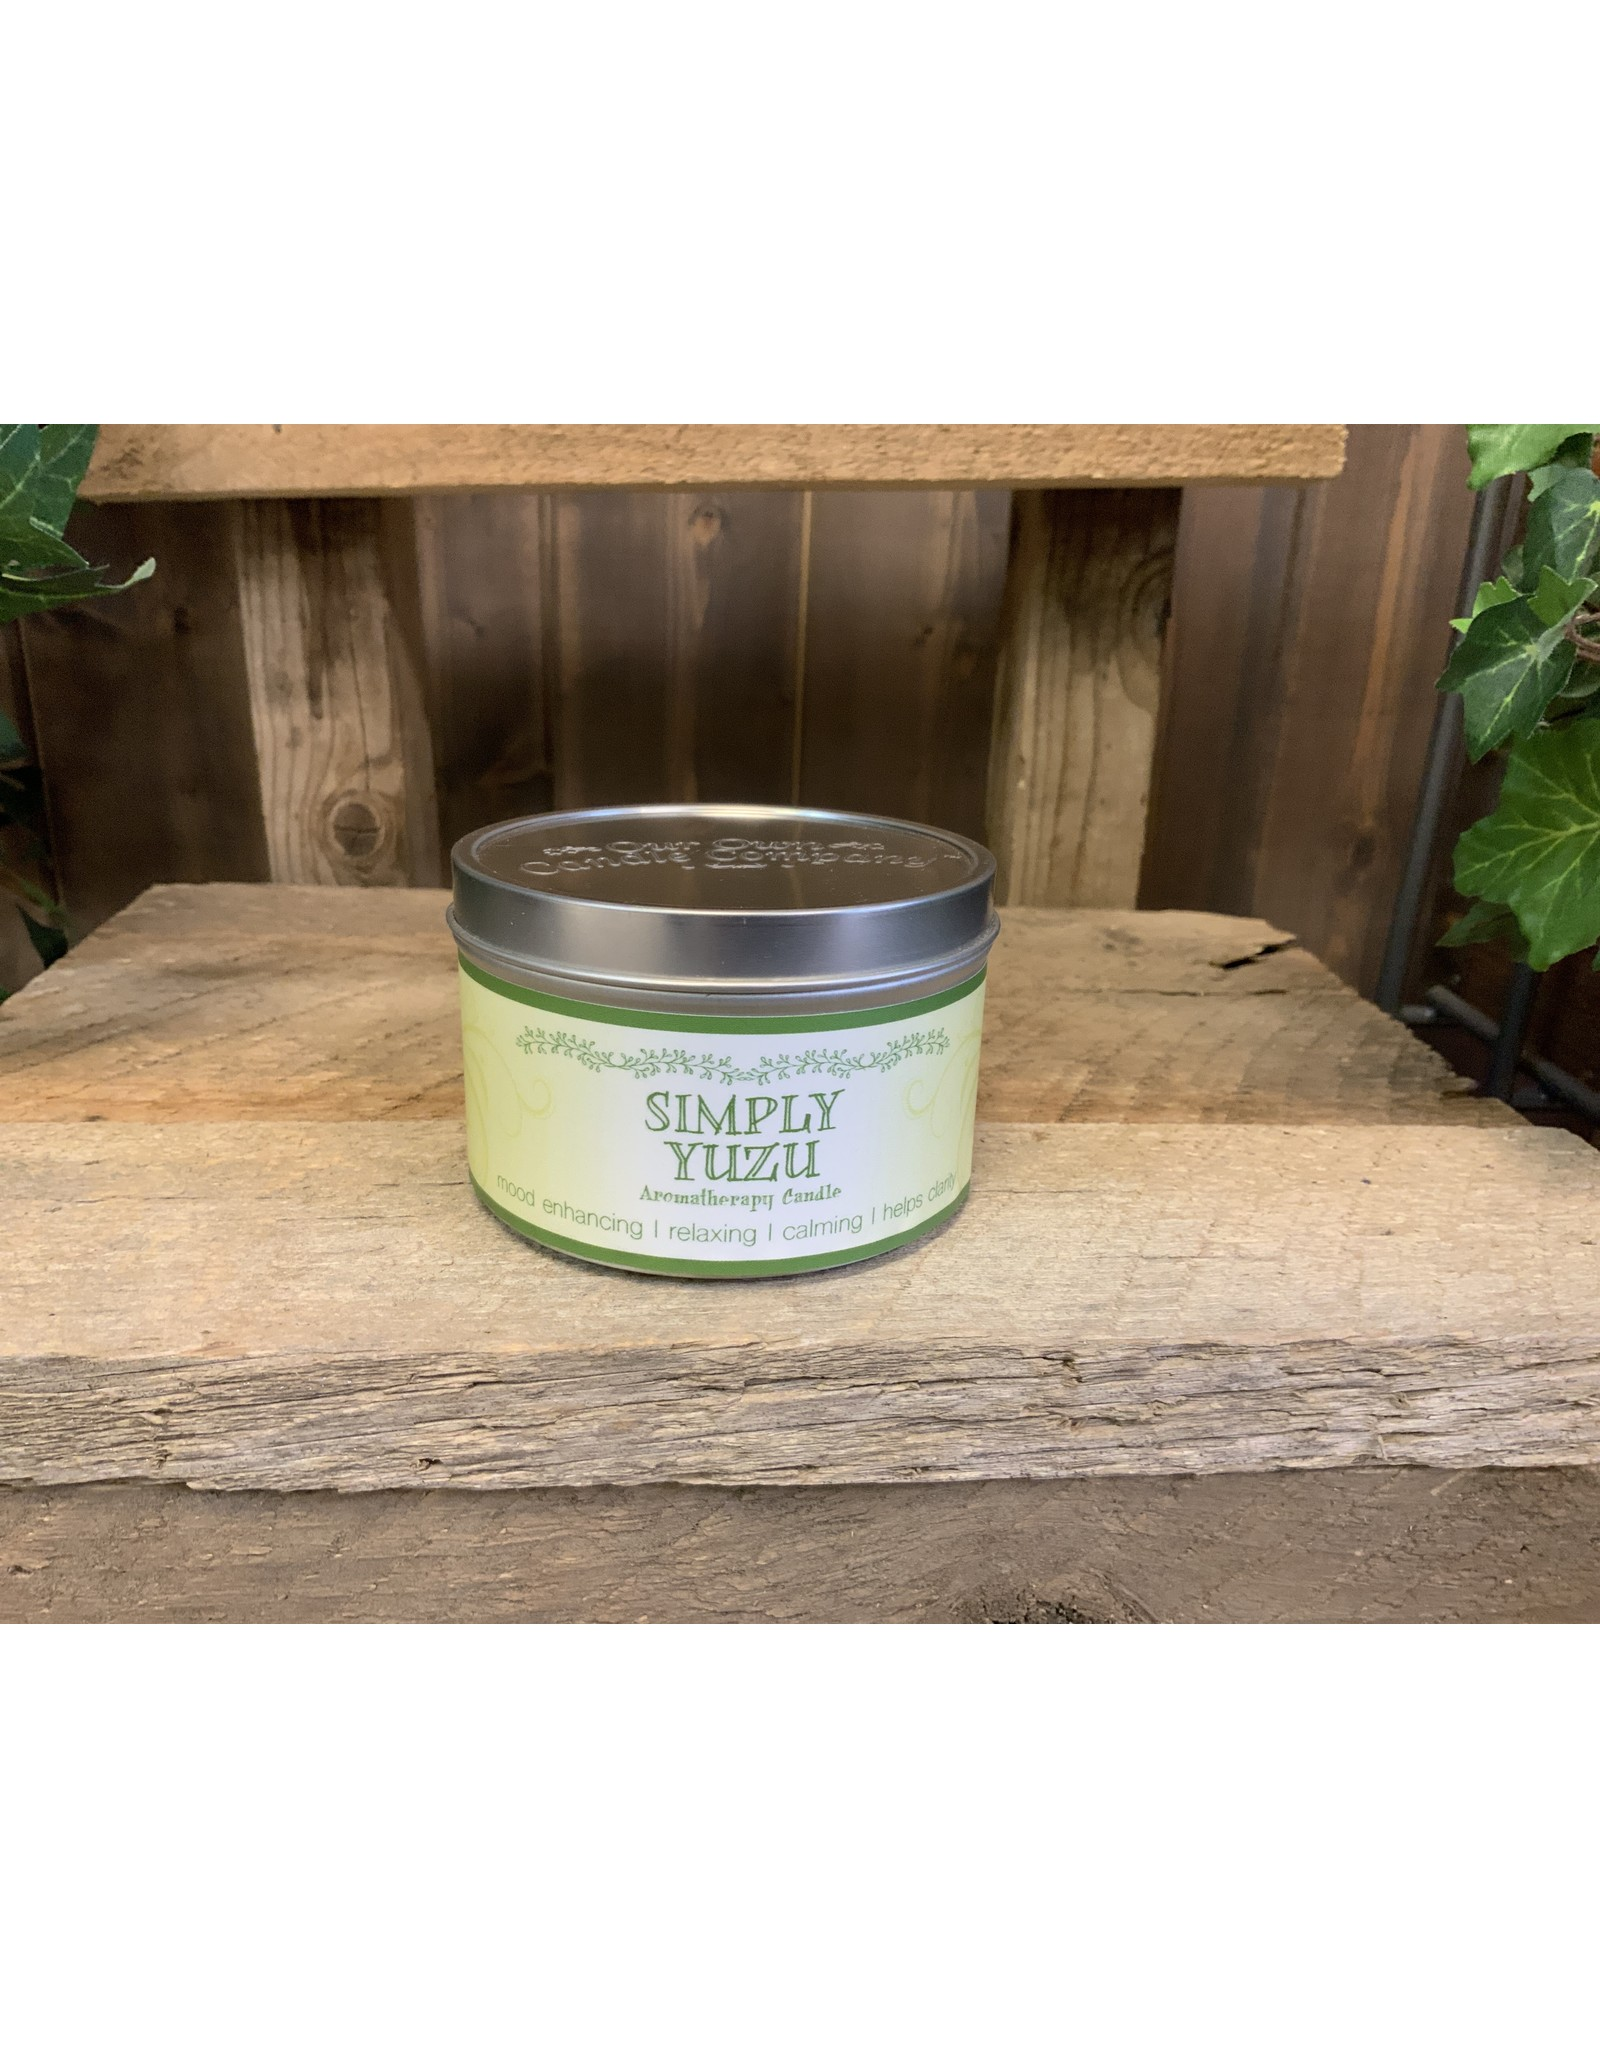 OUR AROMATHERAPY CANDLE